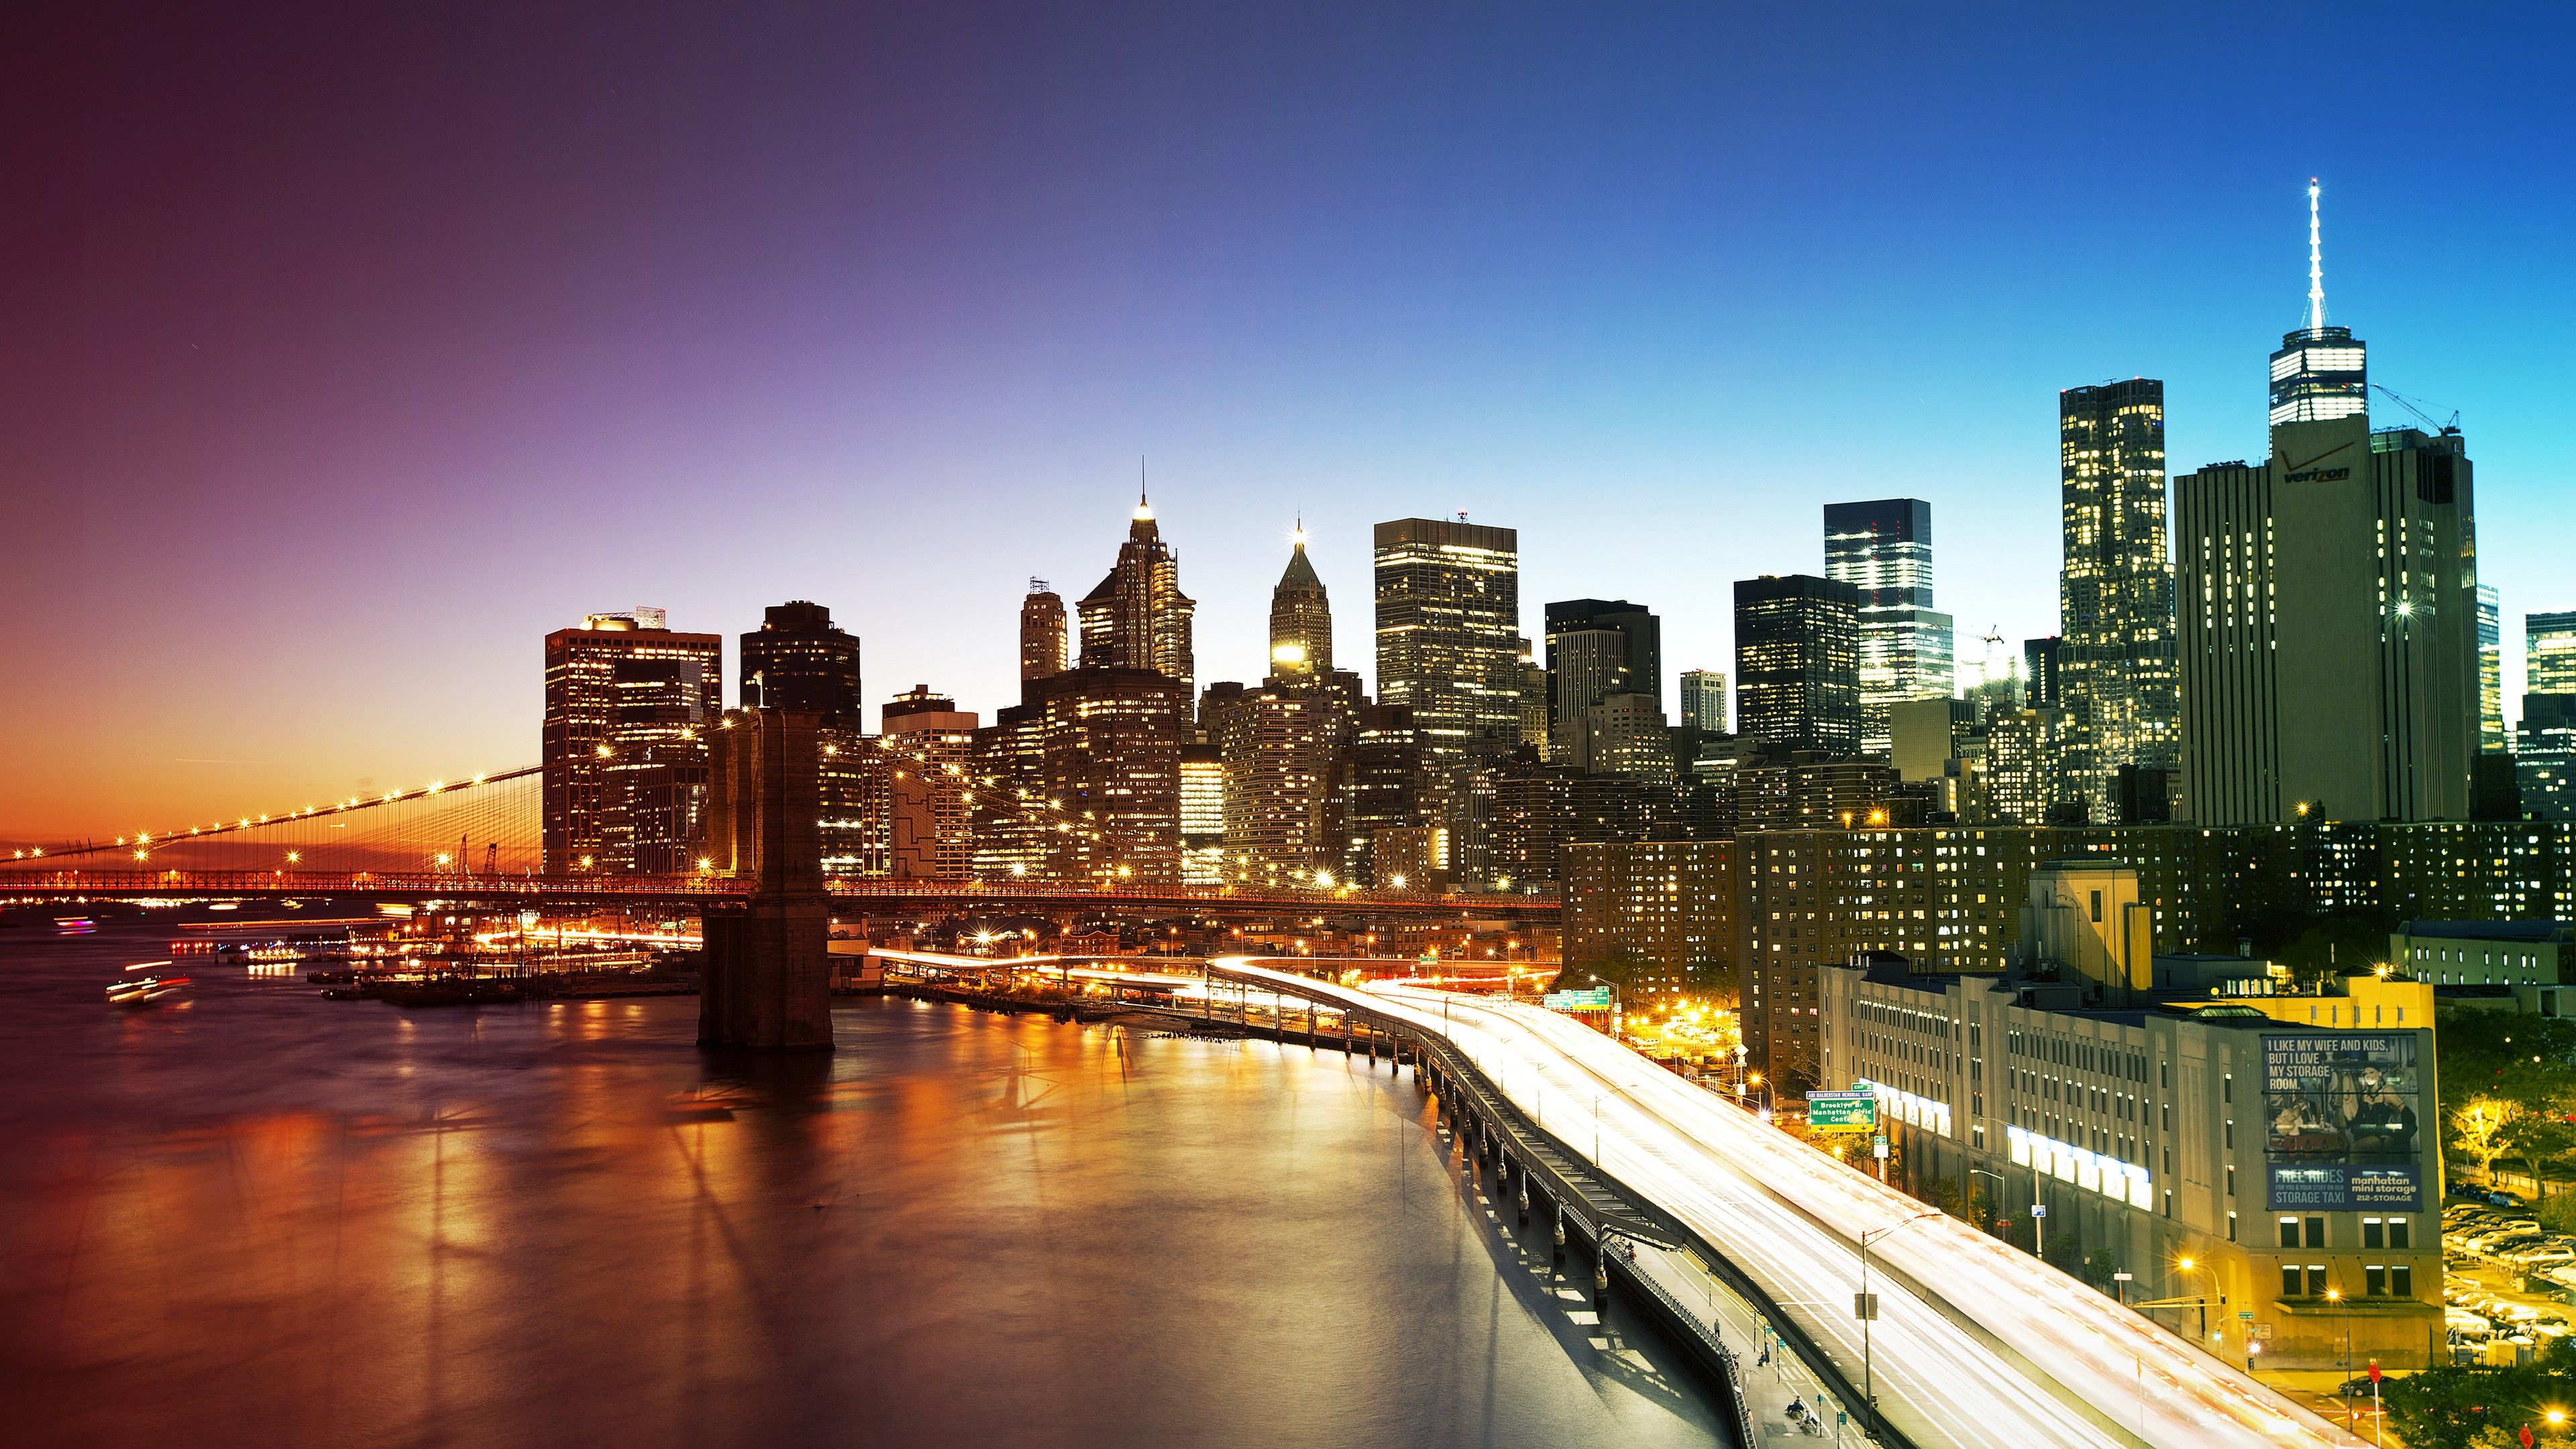 New York Scenery Wallpapers Top Free New York Scenery Backgrounds Wallpaperaccess